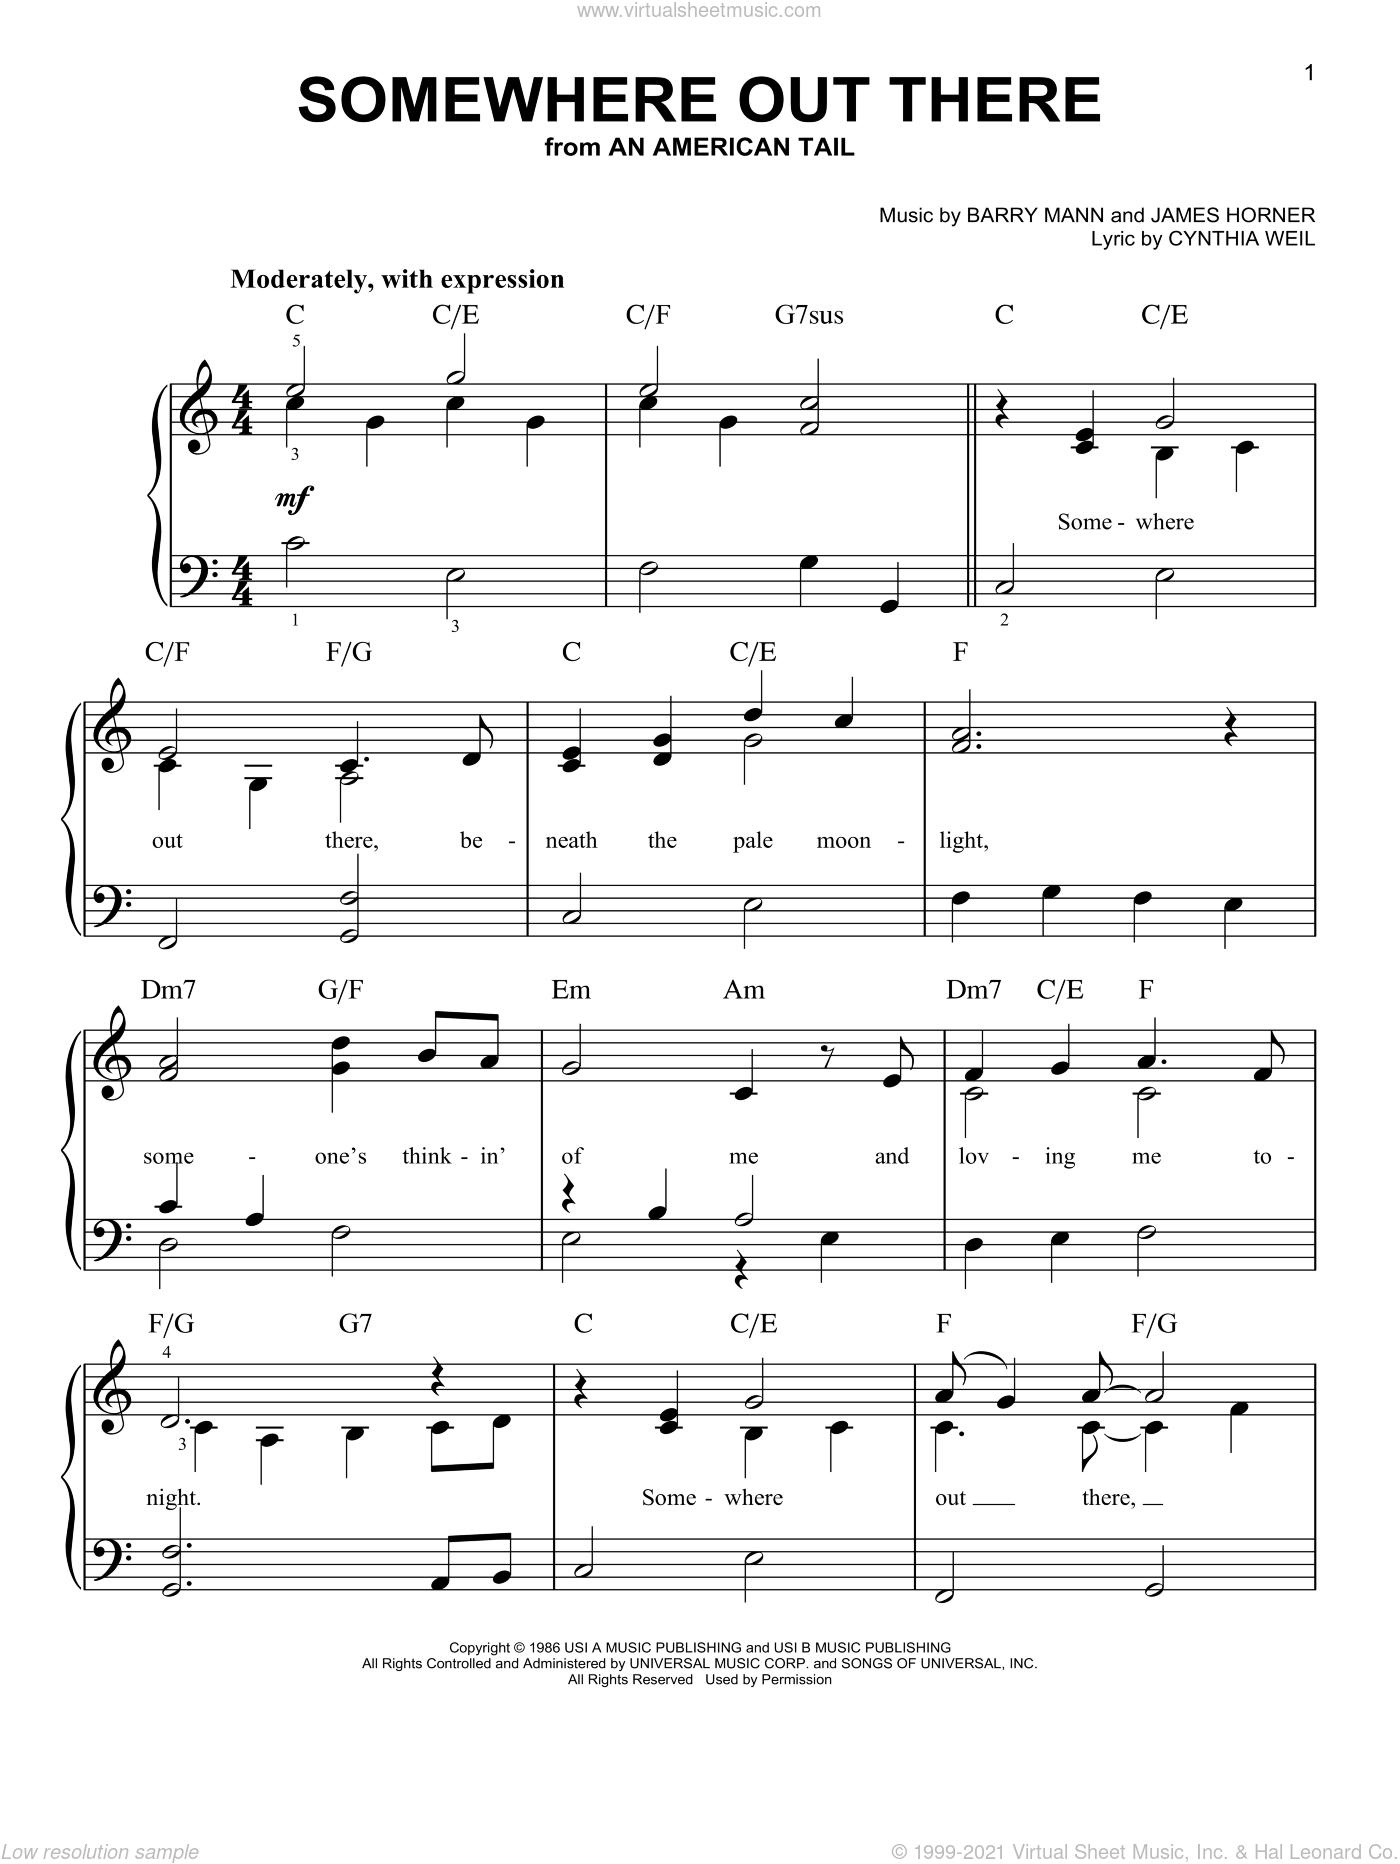 Somewhere Out There sheet music for piano solo (chords) by James Horner